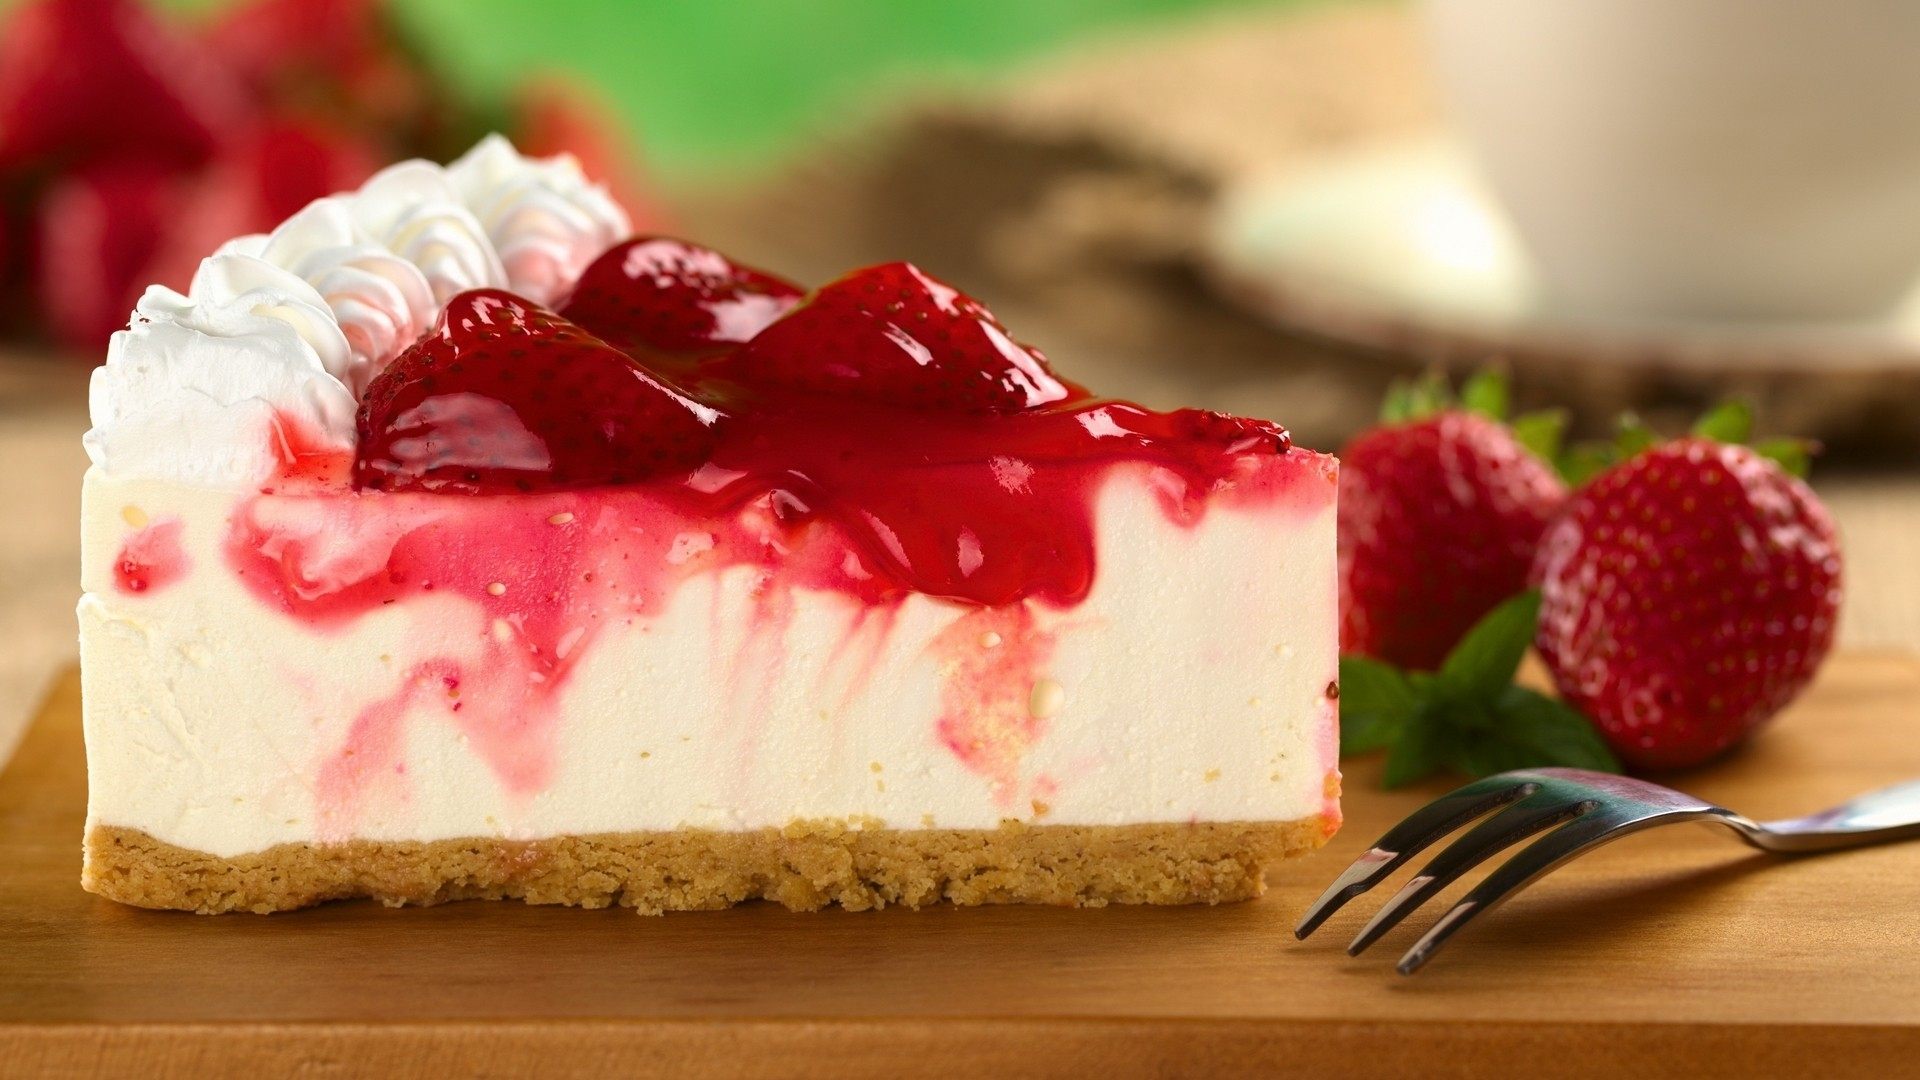 Cheesecake Wallpaper